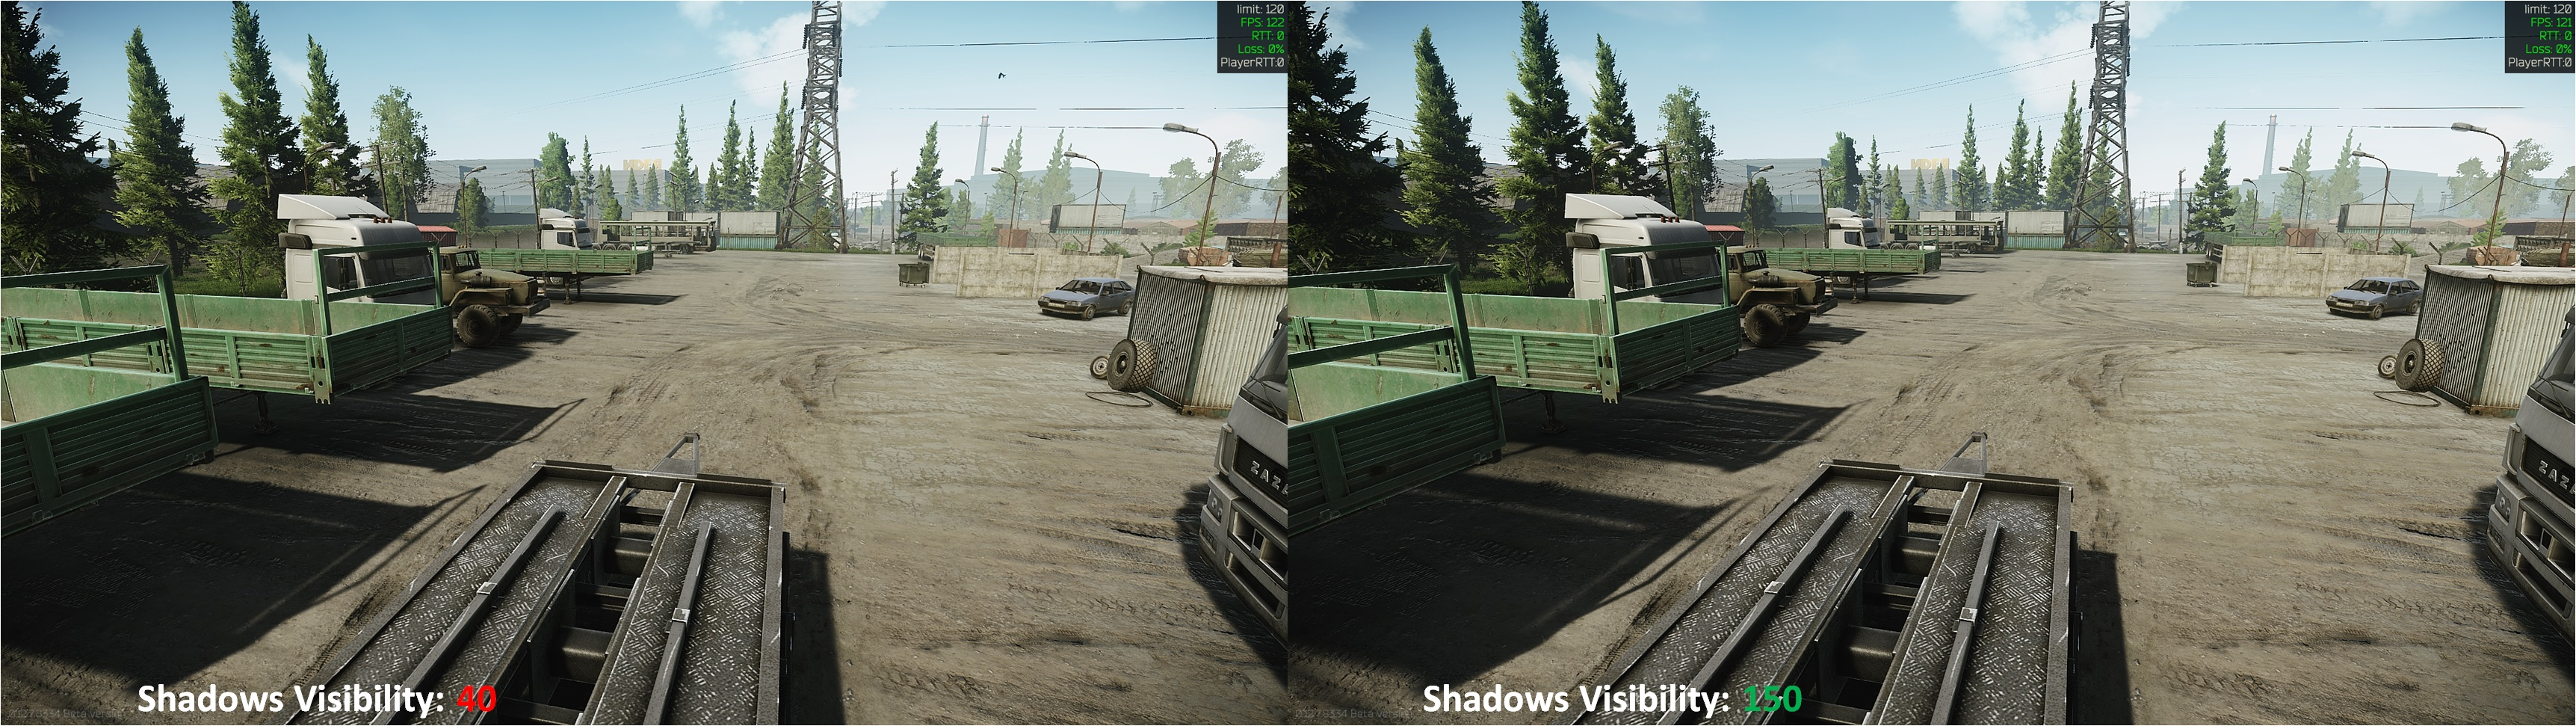 Tarkov Shadows Visibility Comparison